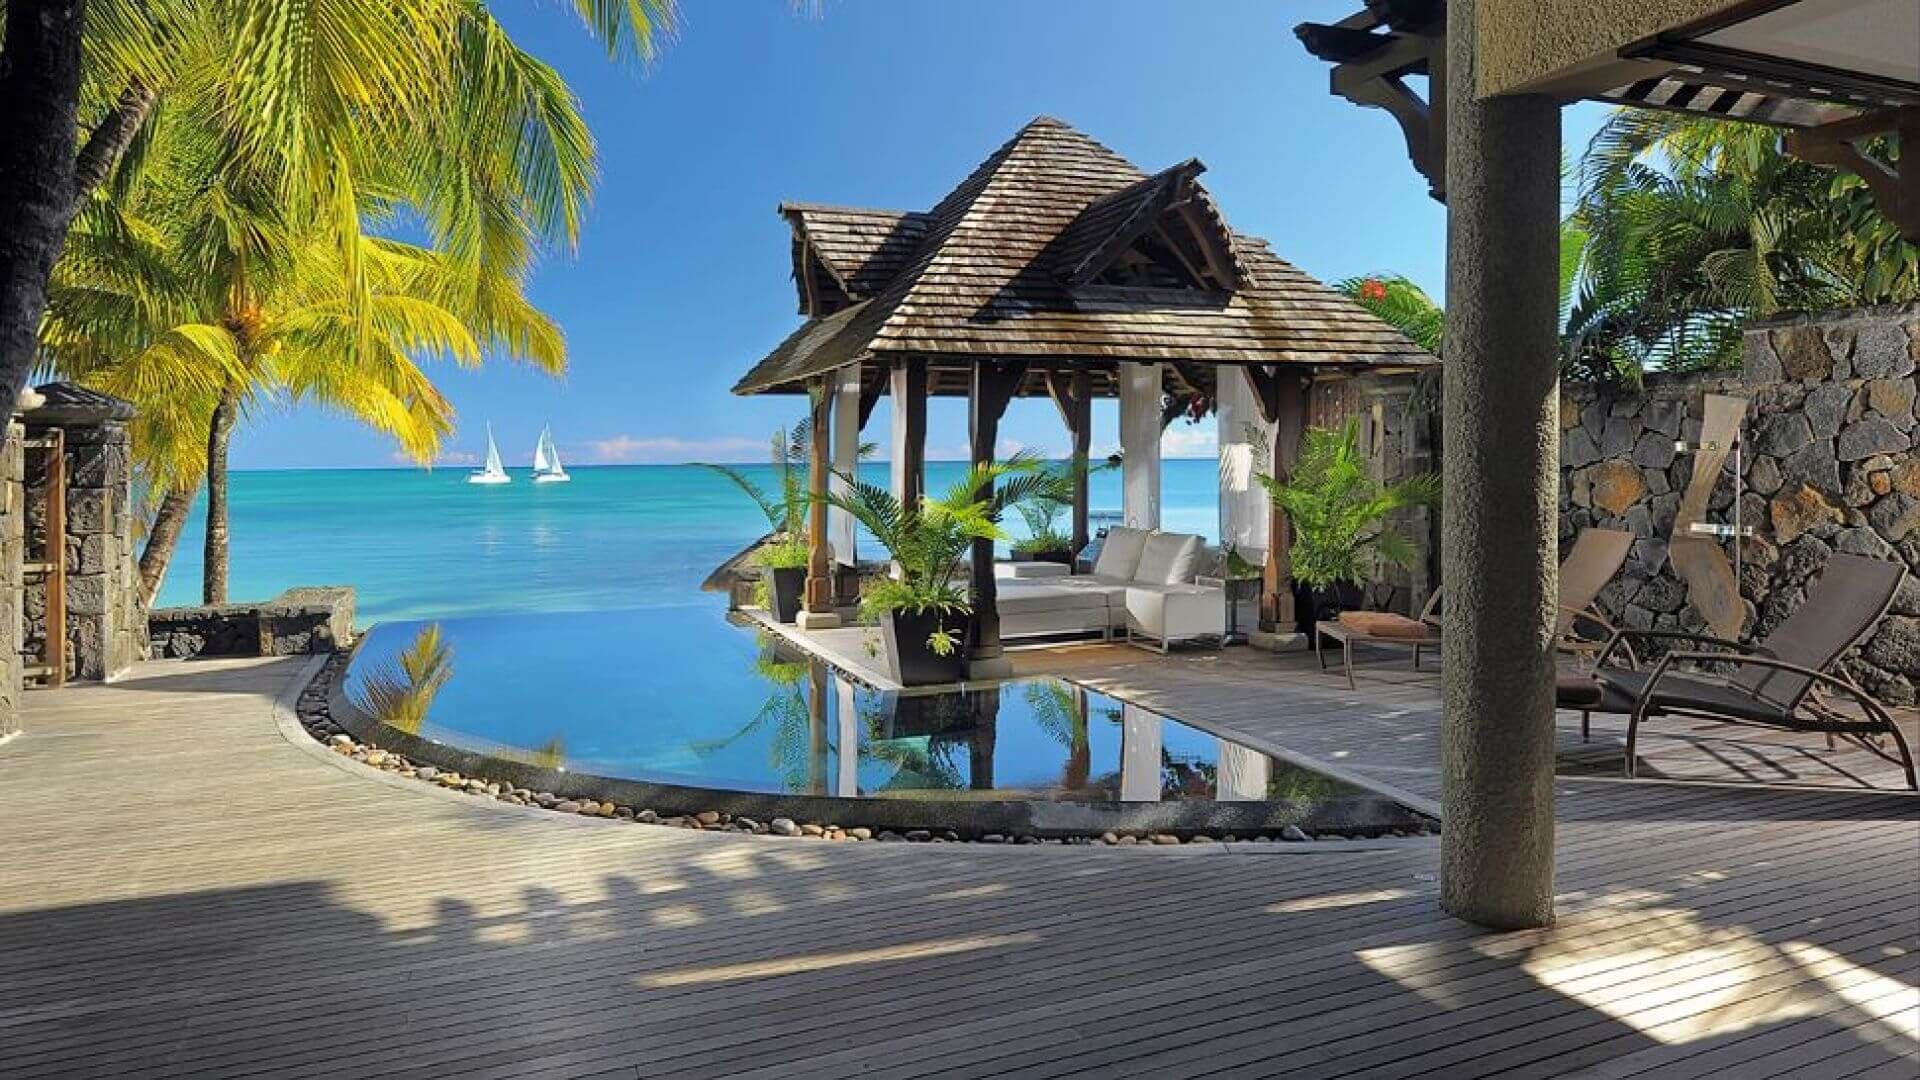 #Royal Palm Beachcomber #GrandBaie #Africa #Mauritius #Hotels #travel #travelblogger #travelgram #travelguide #travels #travelling #travelblog #traveladdict #traveladikkt #beautifuldestinations #bucketlist #luxury #luxurylifestyle #luxurytravel #luxurydestinations #lifestyle #lifestyleblogger #beautifulplaces #beautifulplace #beautiful #beautifuldestination